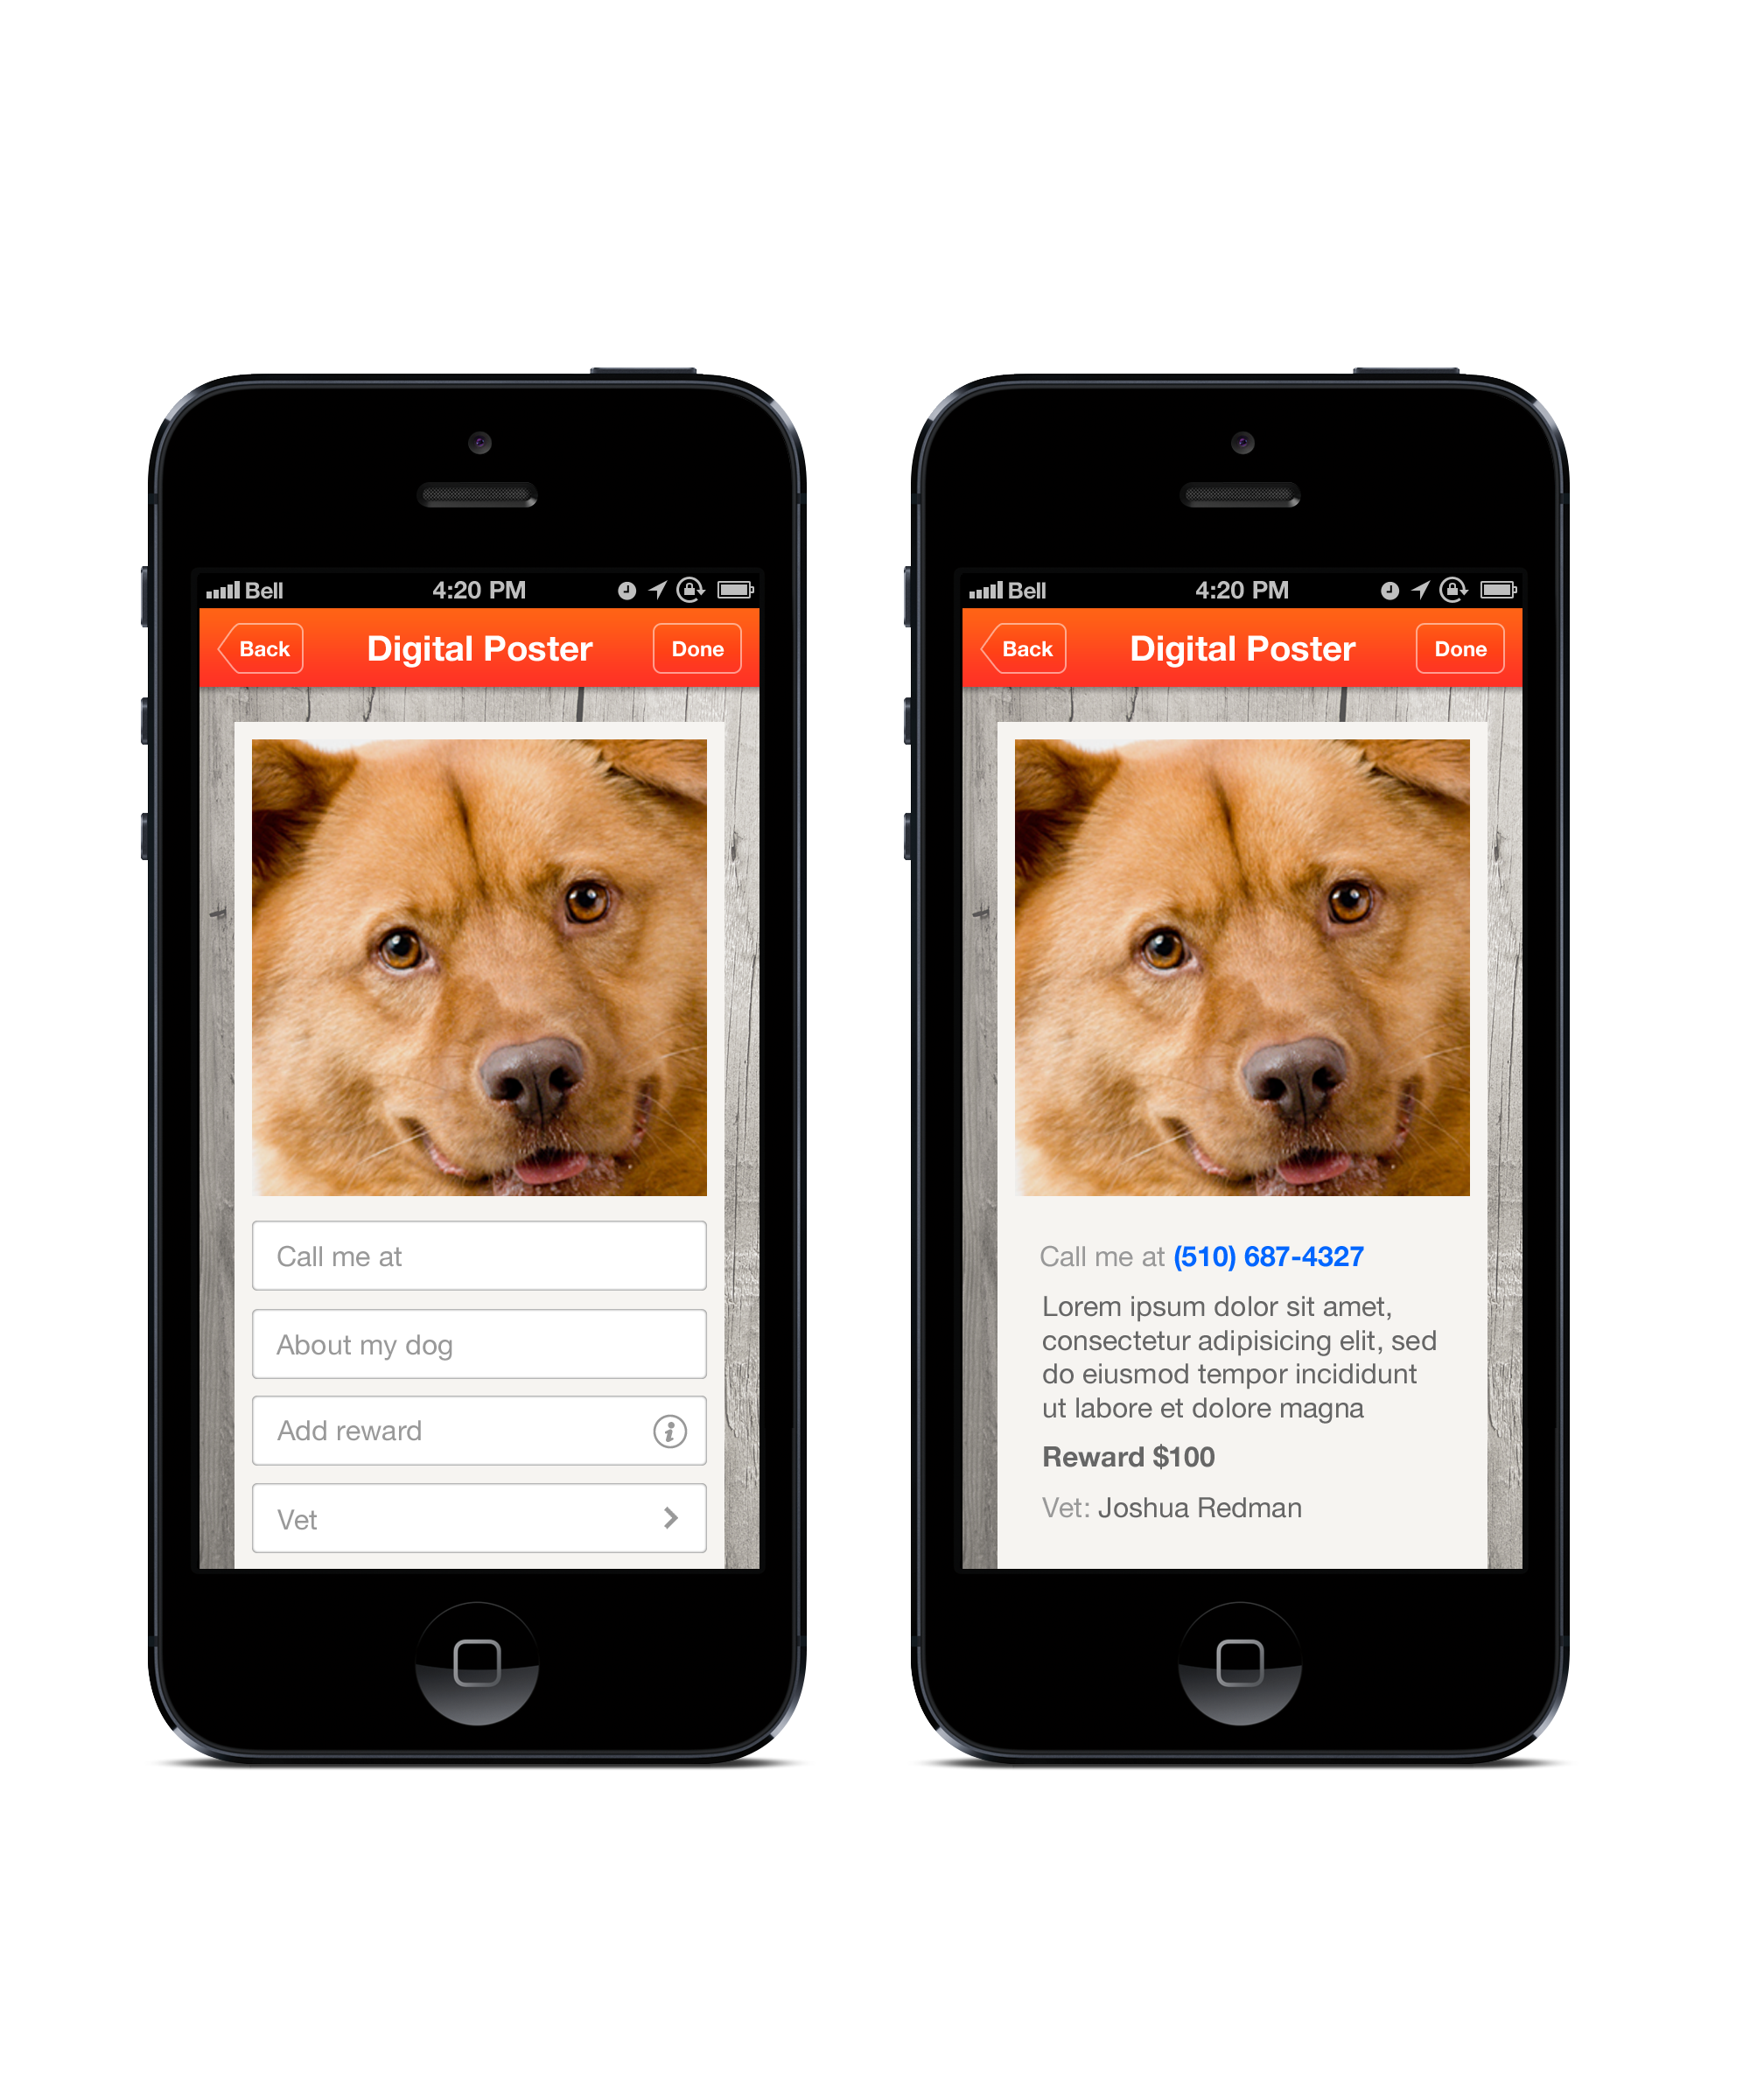 New Smartphone App Helps Find Lost Dogs Losing a dog